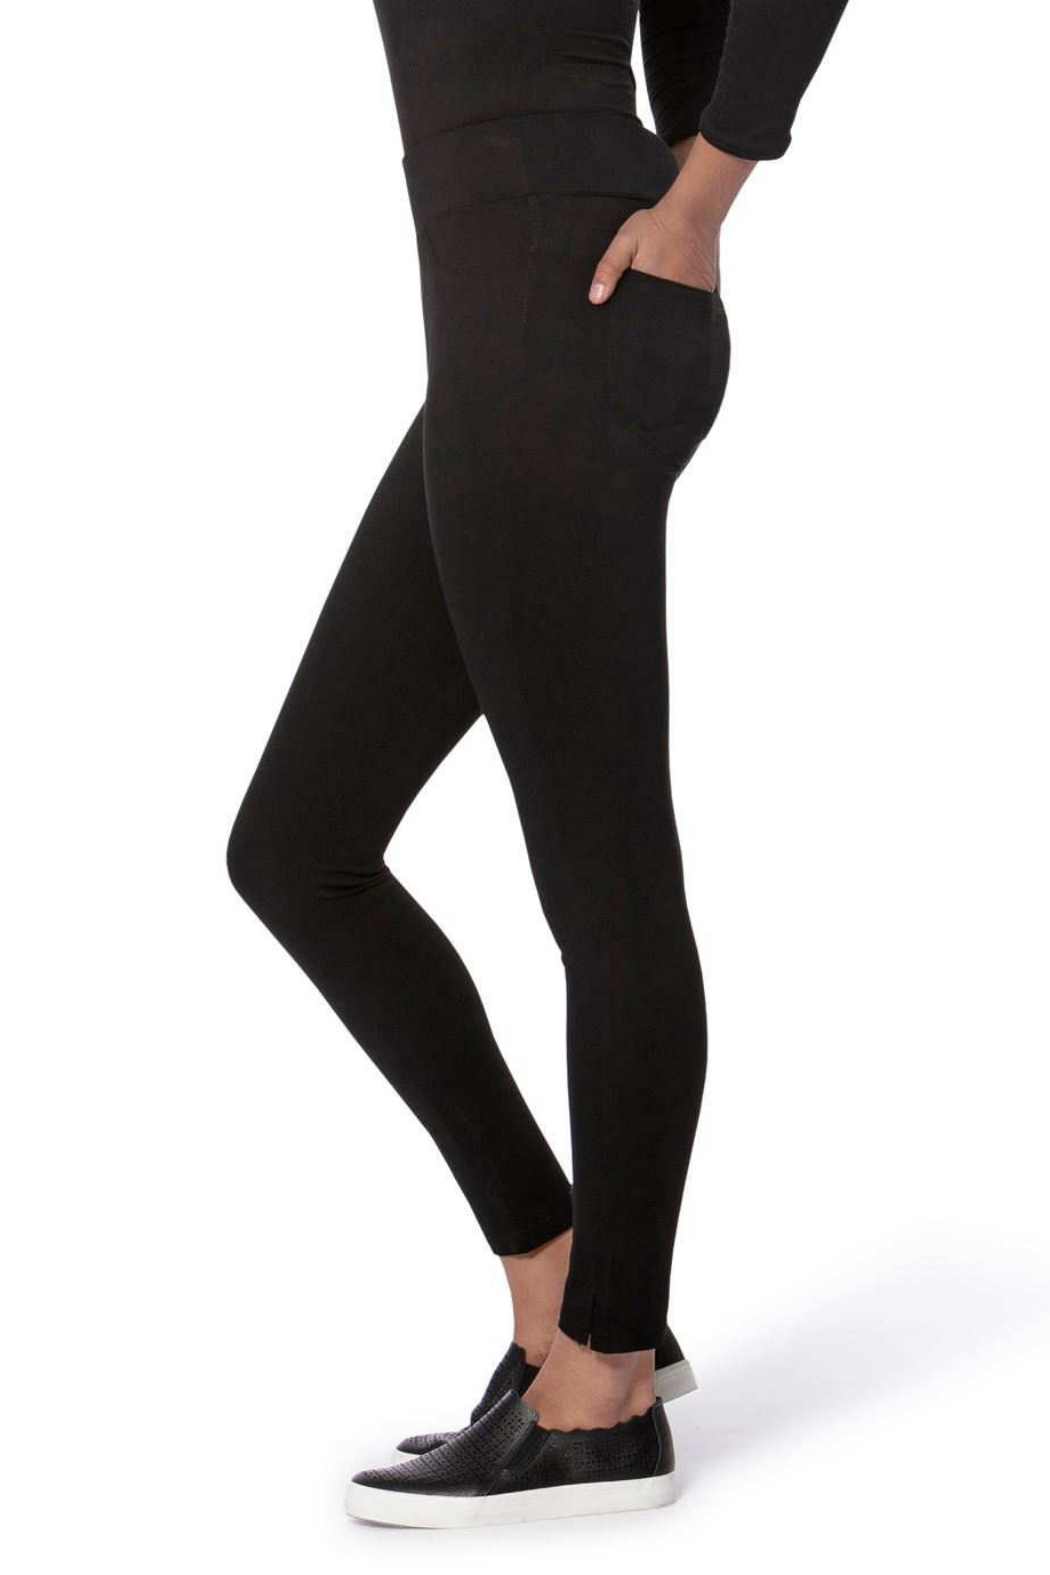 Lola Jeans Anna Mid Rise Pull on Skinny Pants - Front Full Image